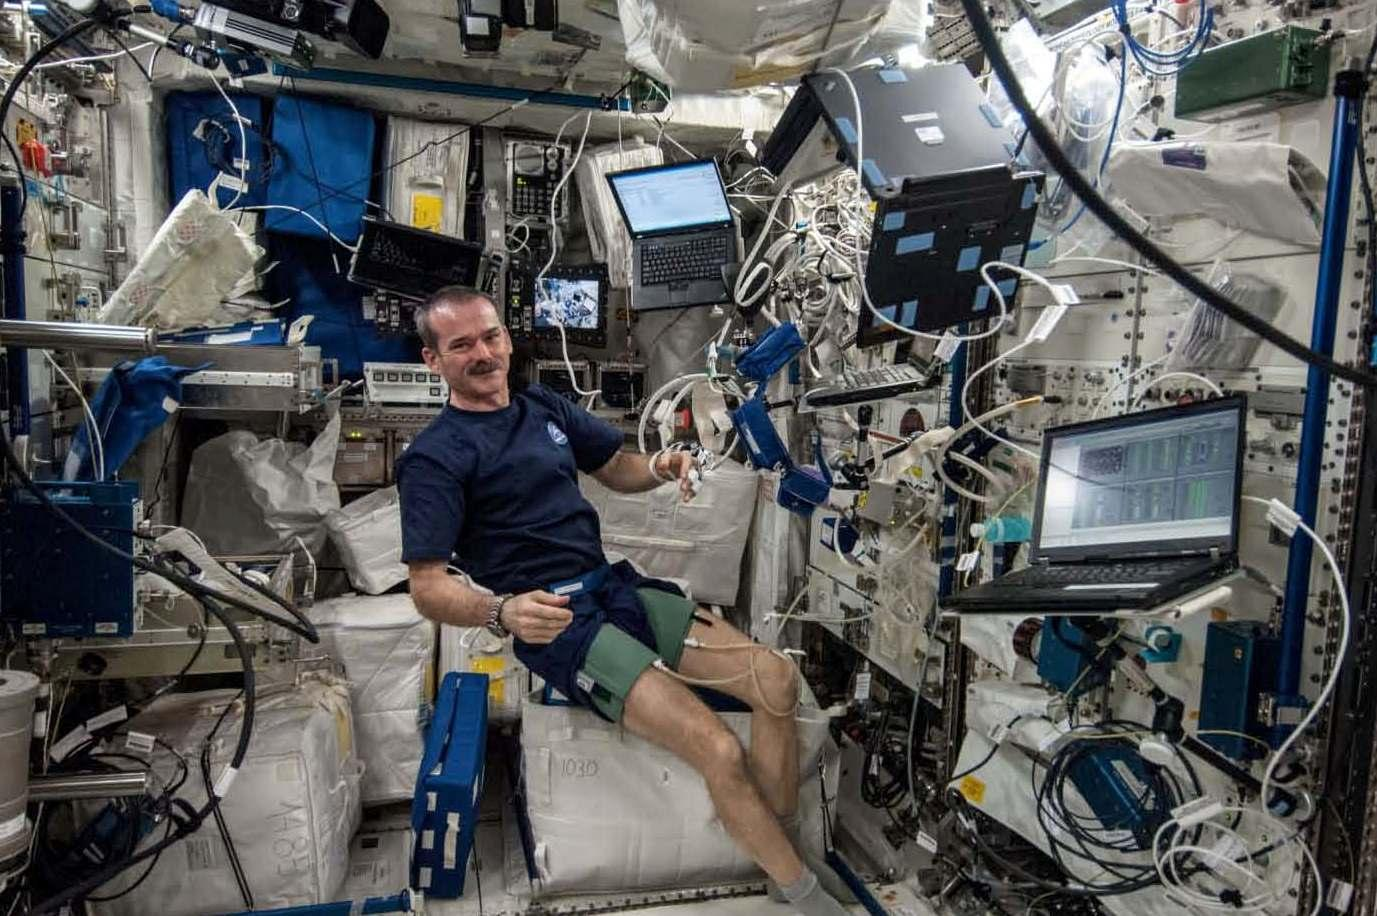 Astronauts May Suffer Artery Damage on Long Missions